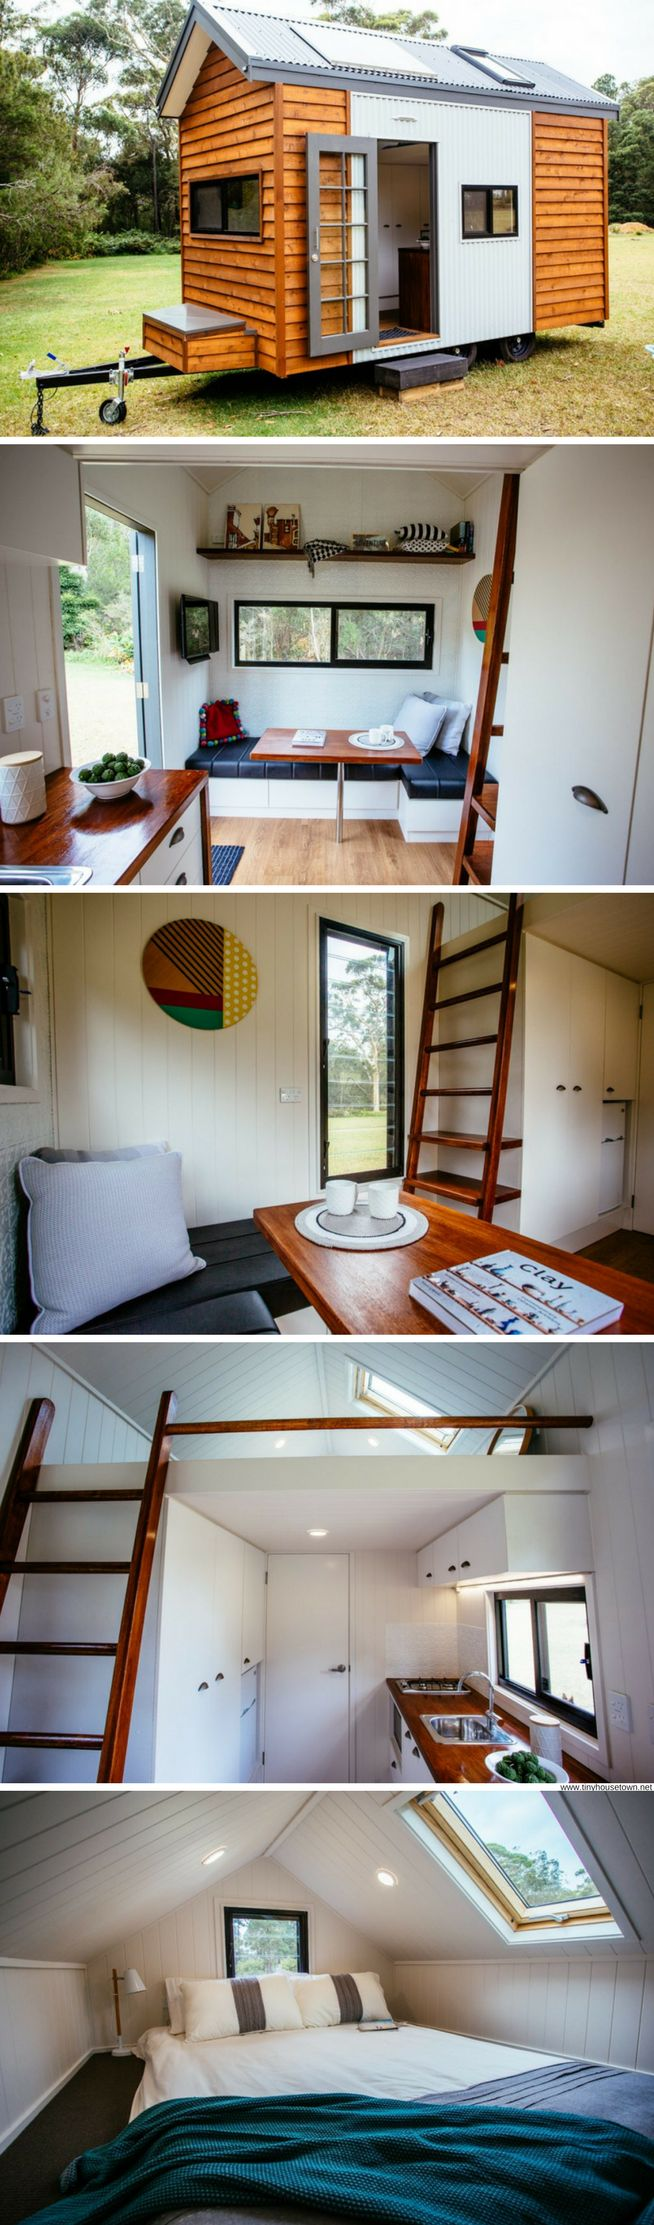 The Independent: an eco-friendly tiny house from Australia!